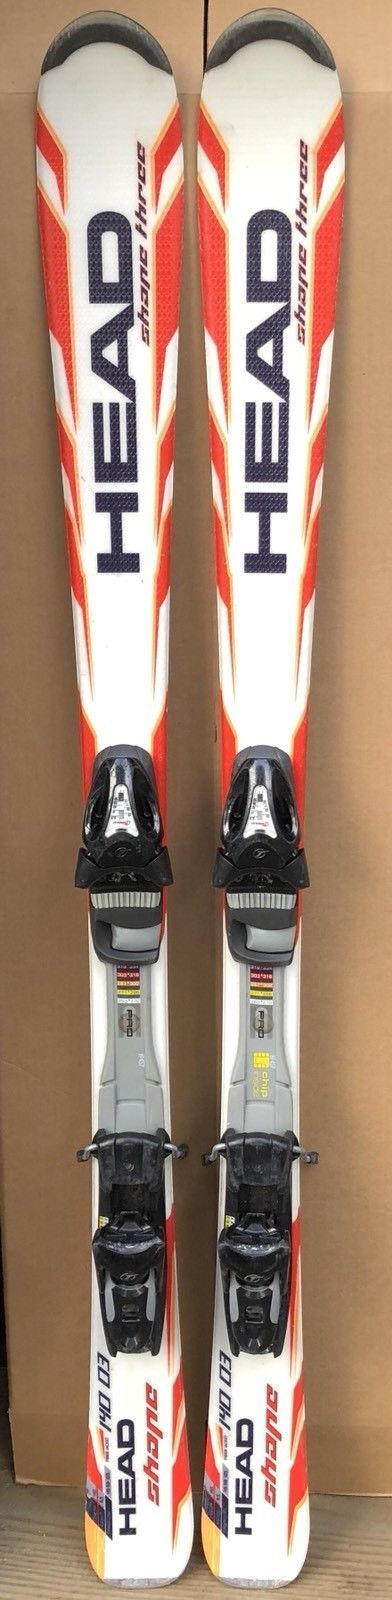 120 cm Head Shape skis bindings+ womens 5.5  or 6 ski boots (plus optional poles)  at the lowest price